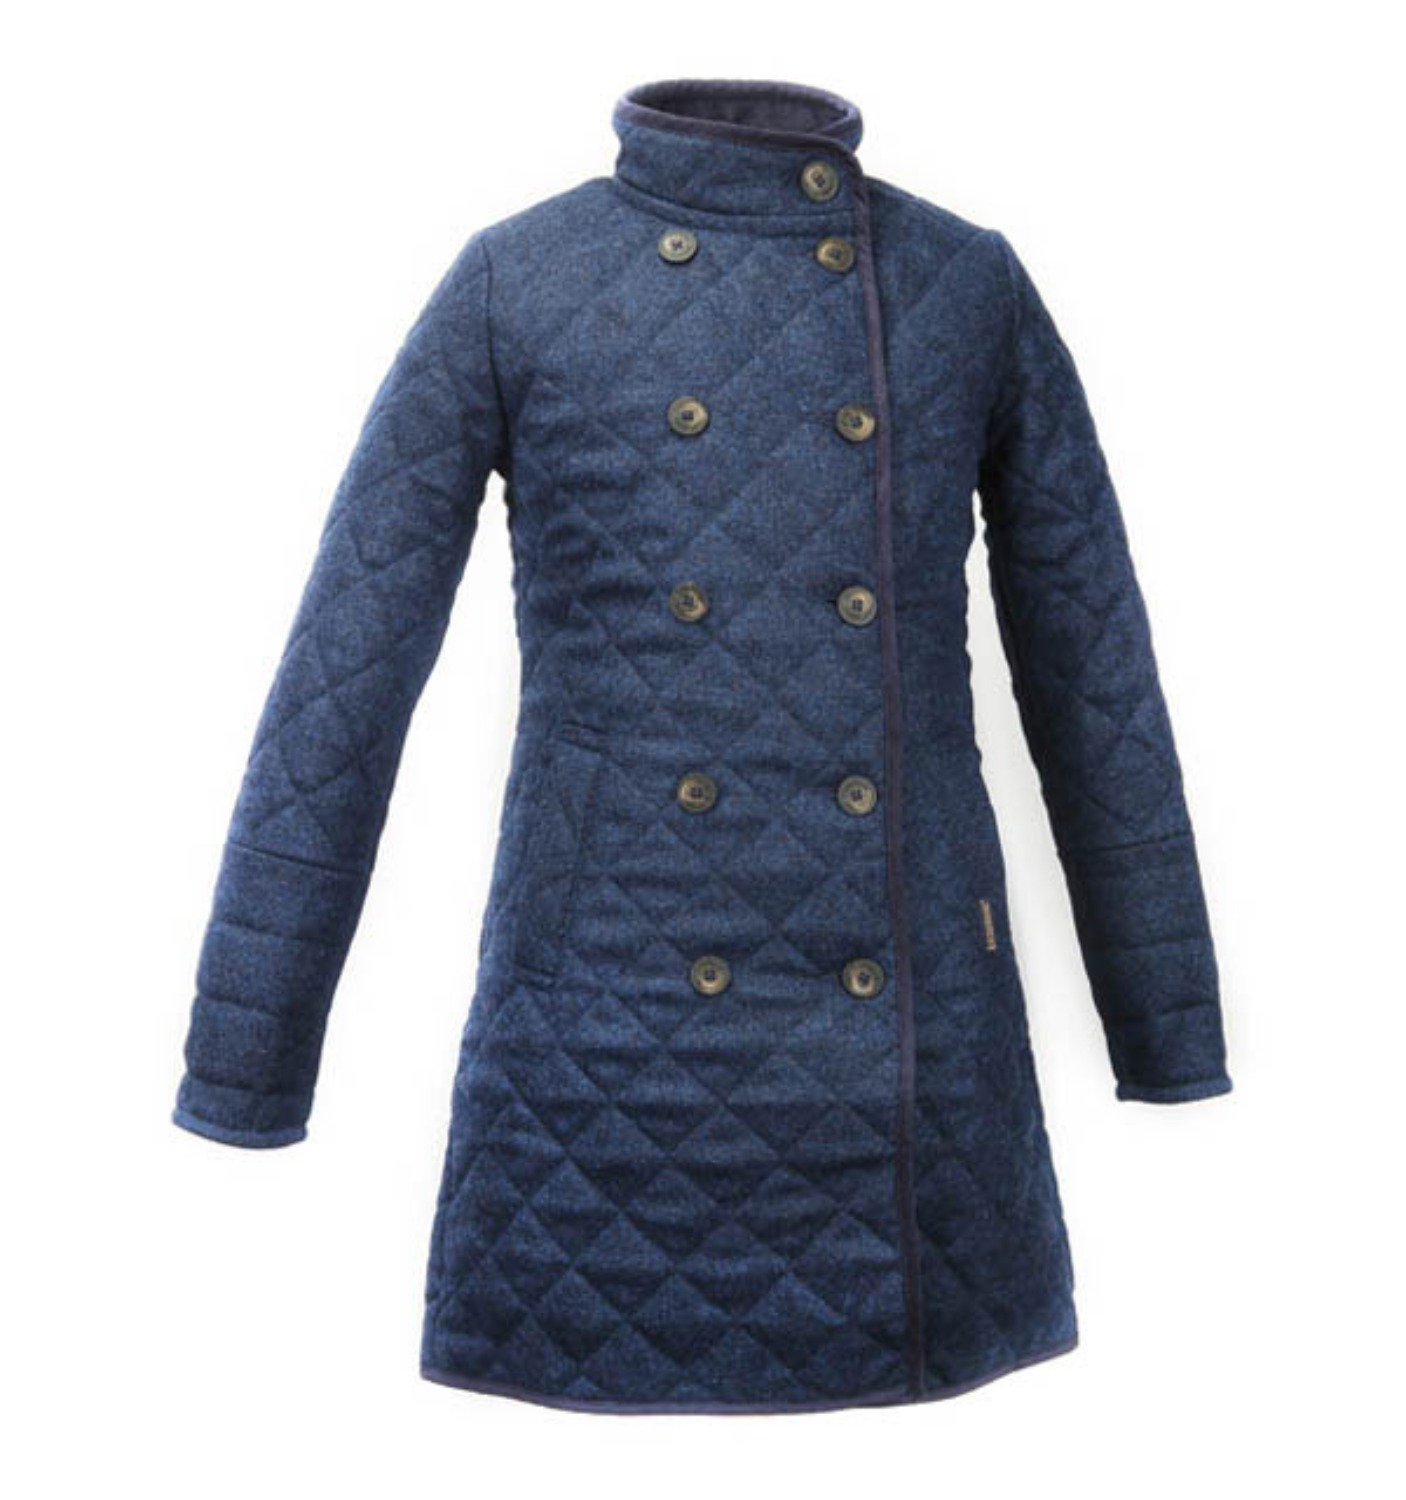 ASHLEY WOOL NAVY